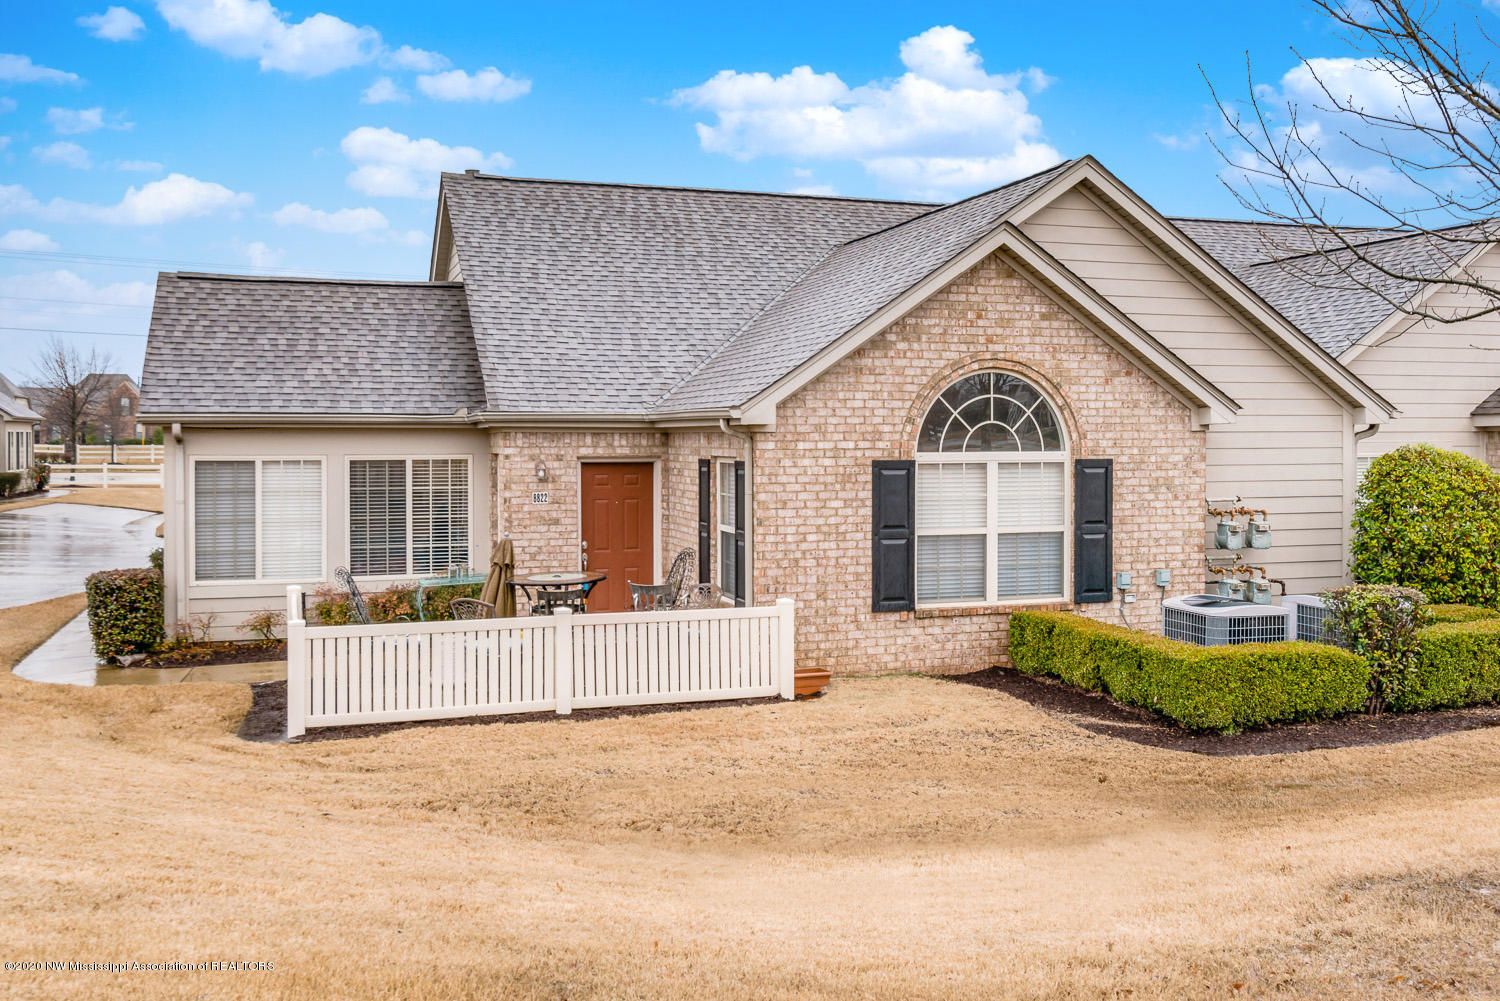 8822 Parkview Oaks Circle, Olive Branch, Mississippi